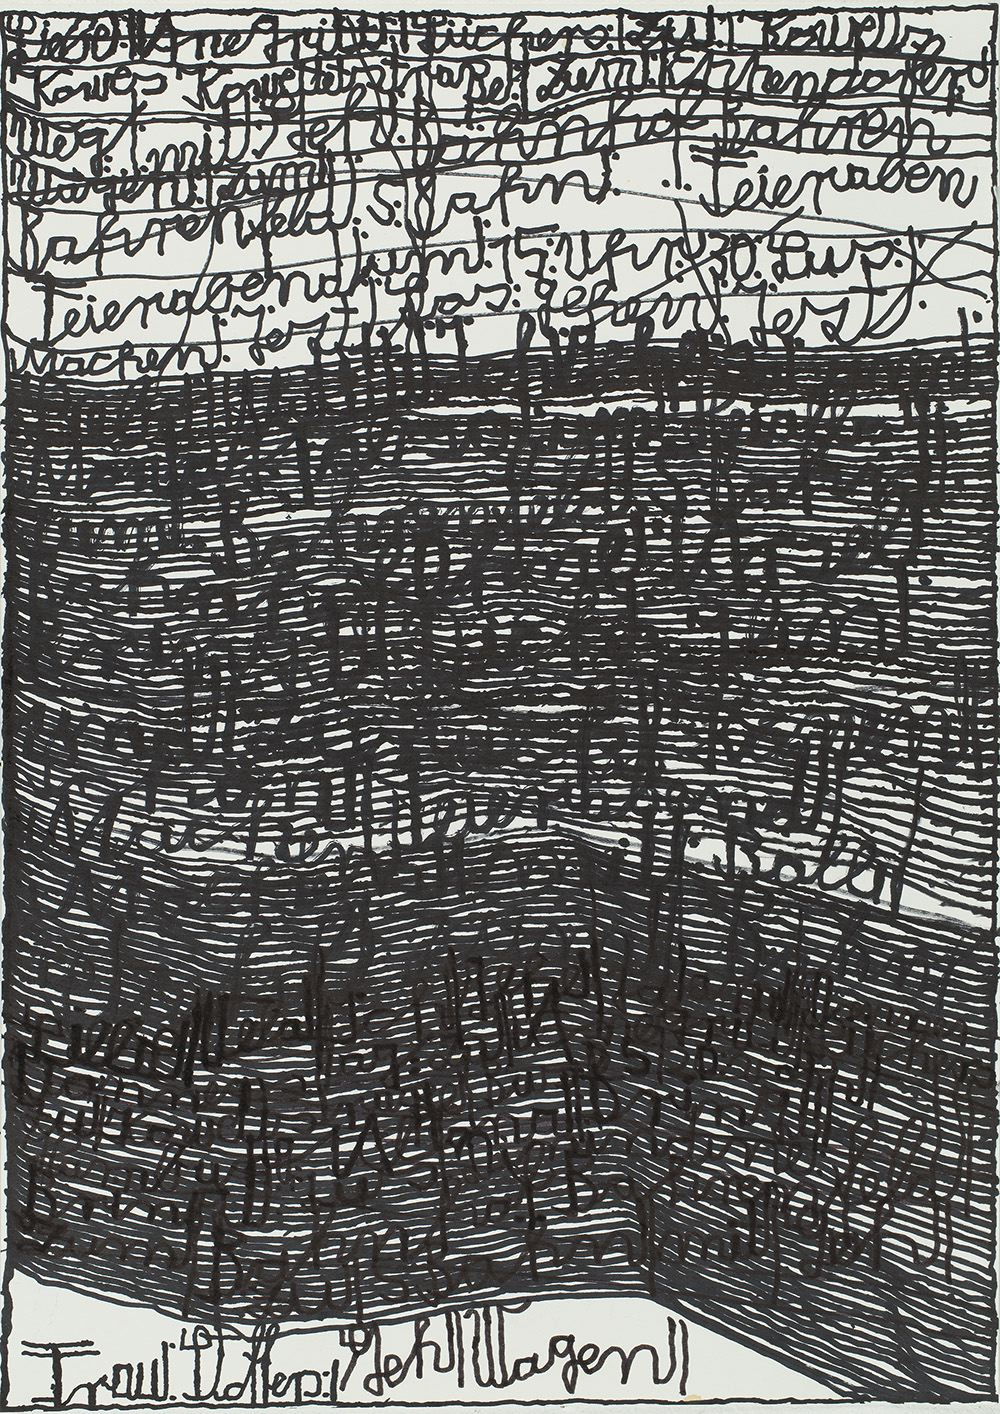 Harald Stoffers Brief 336, 2014 Waterproof felt tip pen on paper 16.5 x 11.75 inches 41.9 x 29.8 cm HaS 18